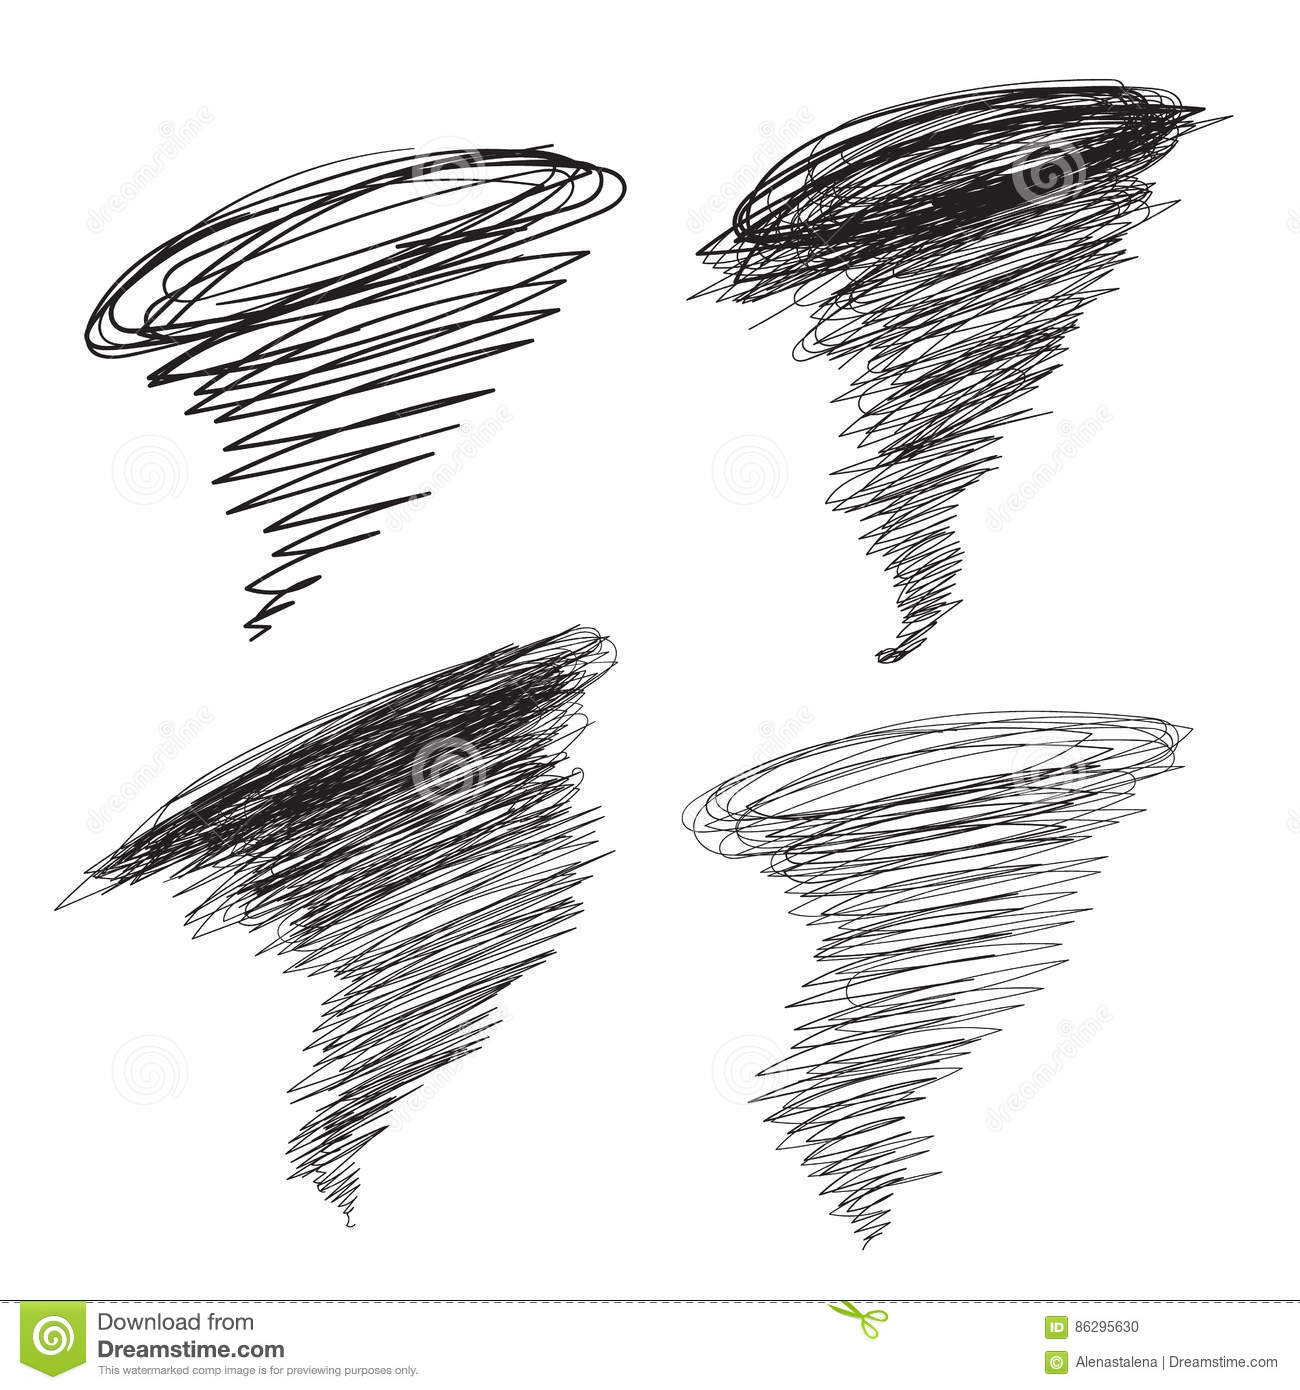 Vector hand-drawn hurricane illustrations set. Cyclone tornado for promotion, banners. Sketch typhoon in thick and thin